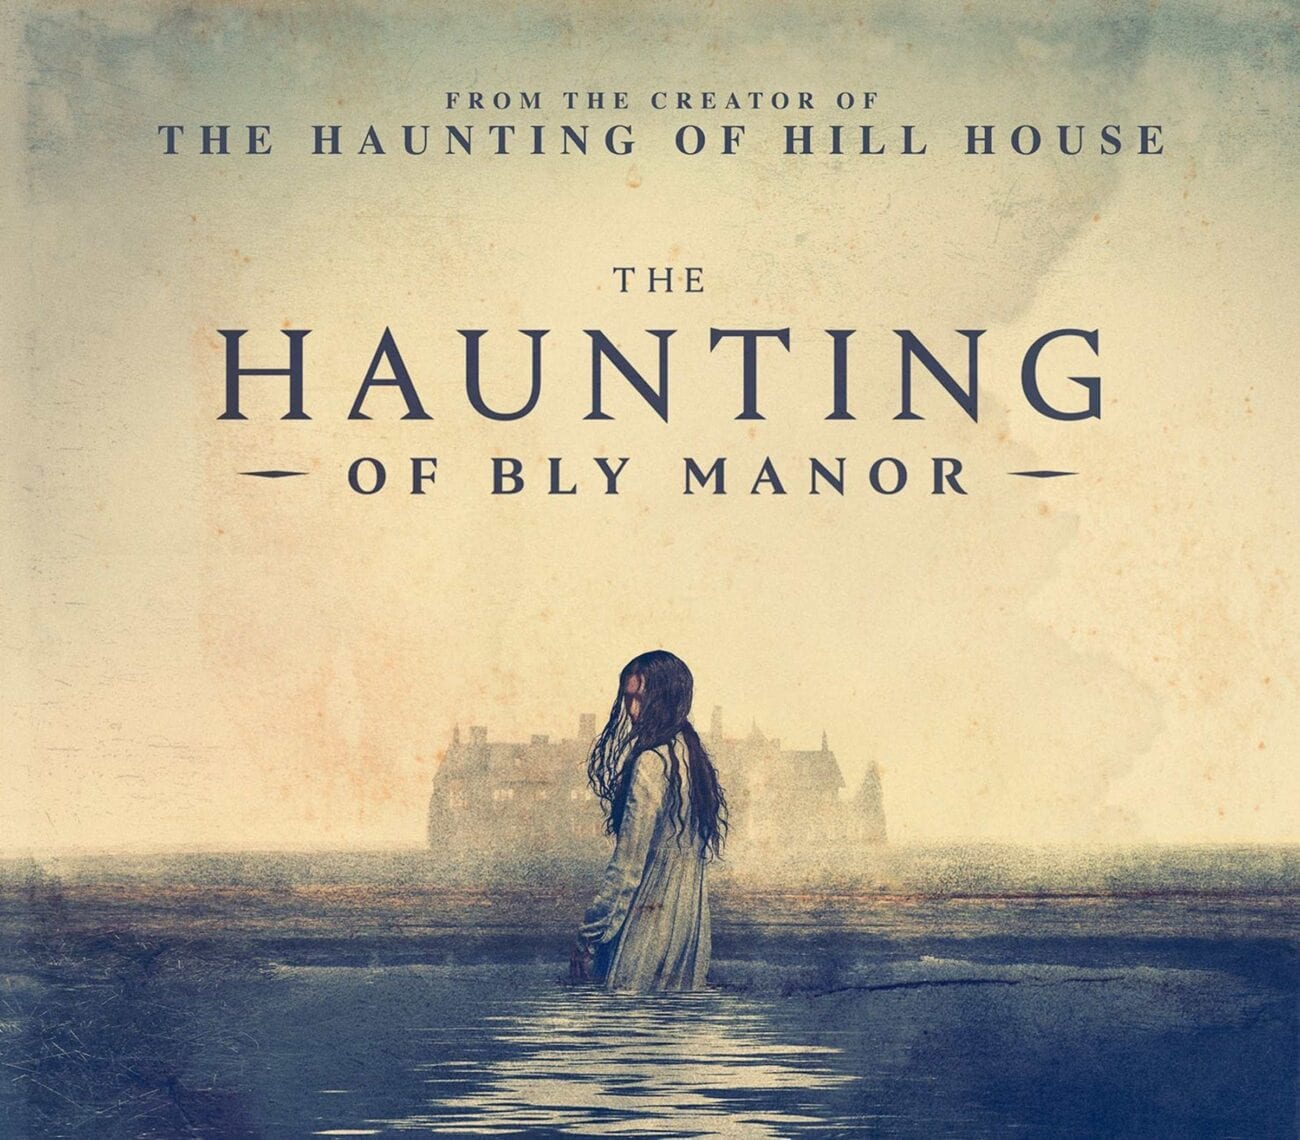 If you just binged 'The Haunting of Bly Manor' on Netflix, you probably have some burning questions. Here are the answers.